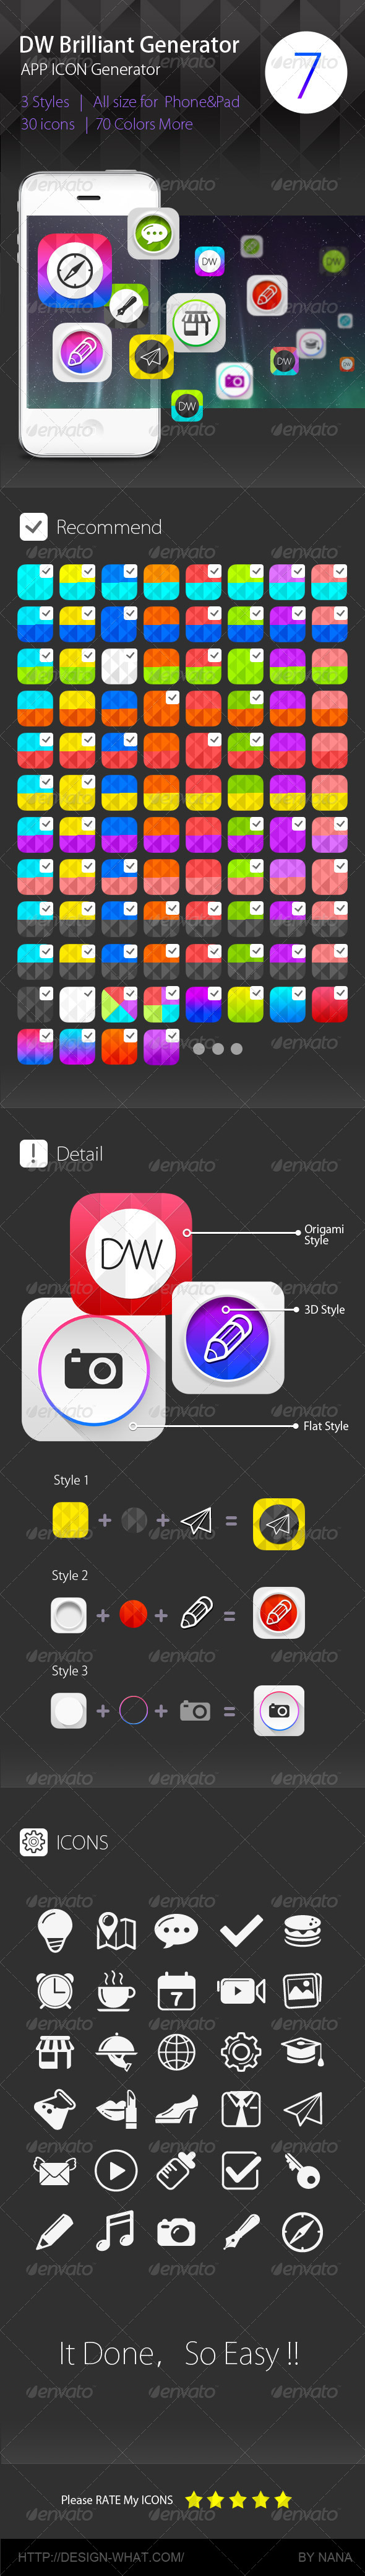 App Icon Generator for DW - Software Icons